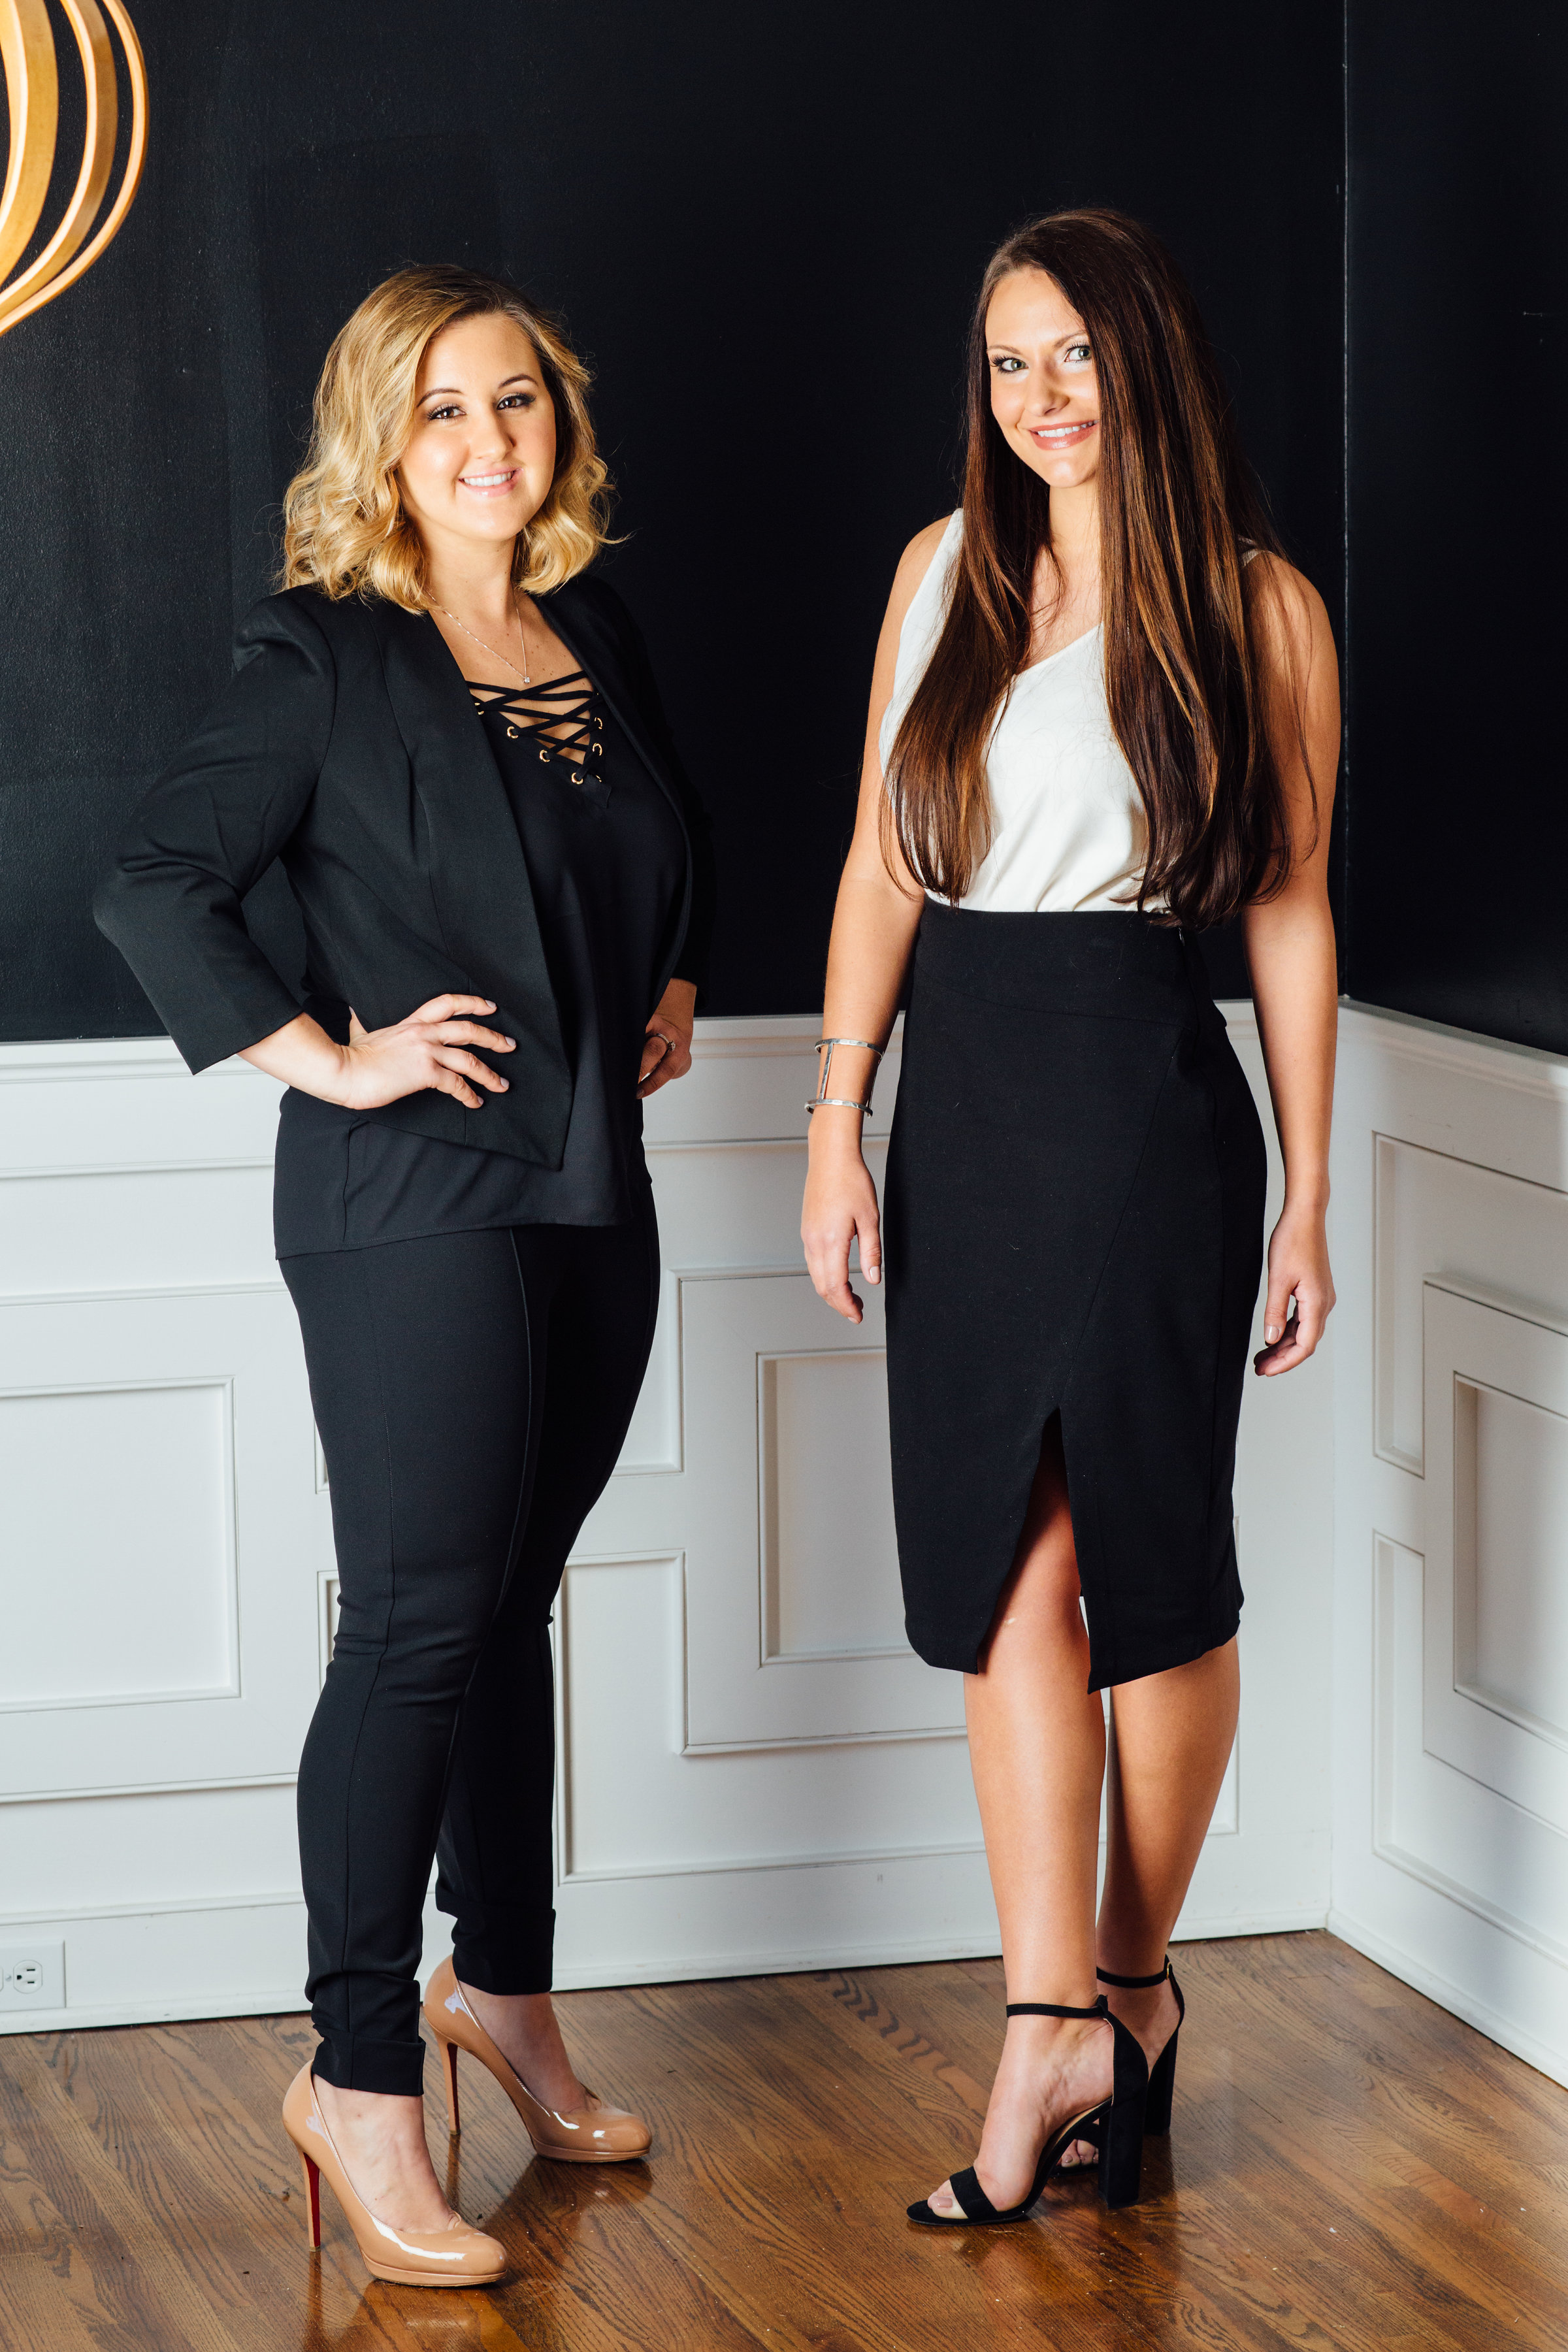 C2 Media Relations Owners Carly Caramanna and Chelsea Dartez